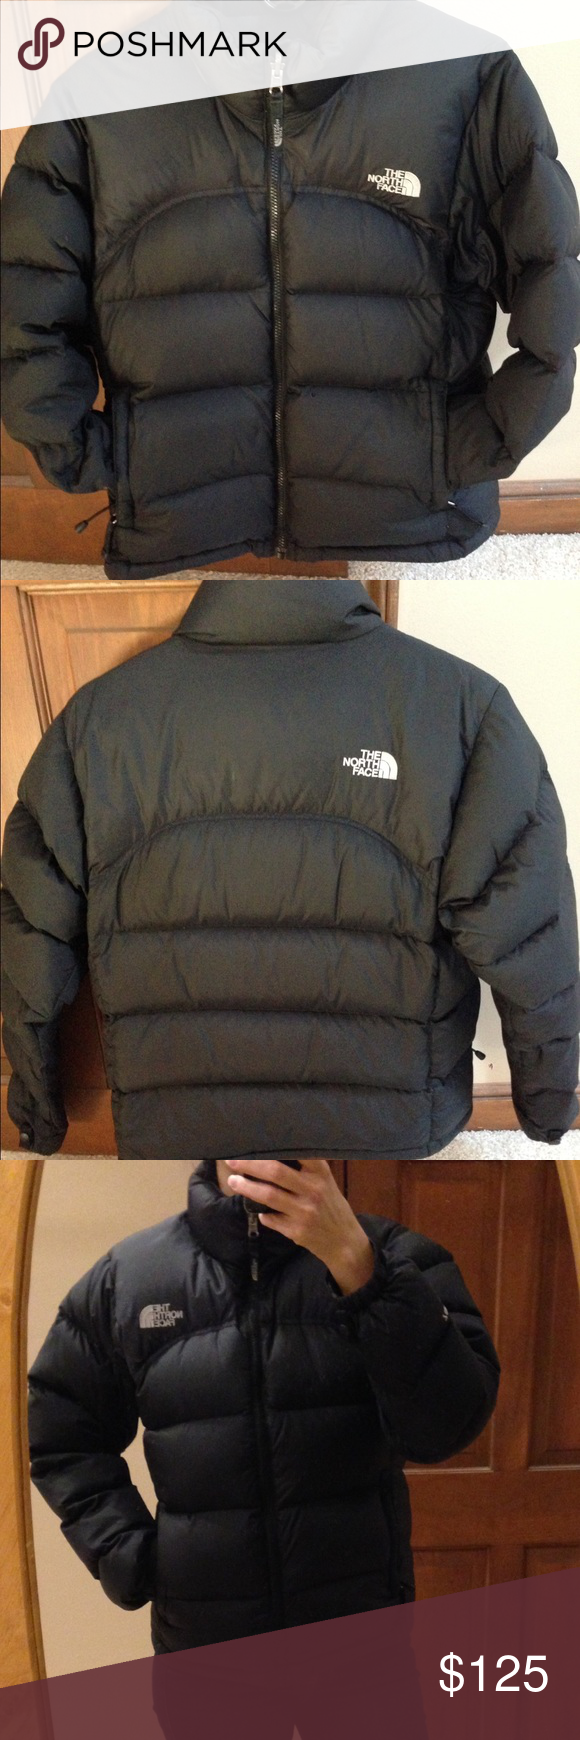 The North Face The North Face Women S Classic Black Goose Down Jacket Jacket Is Relaxed Fit Sits At The Wa North Face Jacket North Face Women Clothes Design [ 1740 x 580 Pixel ]